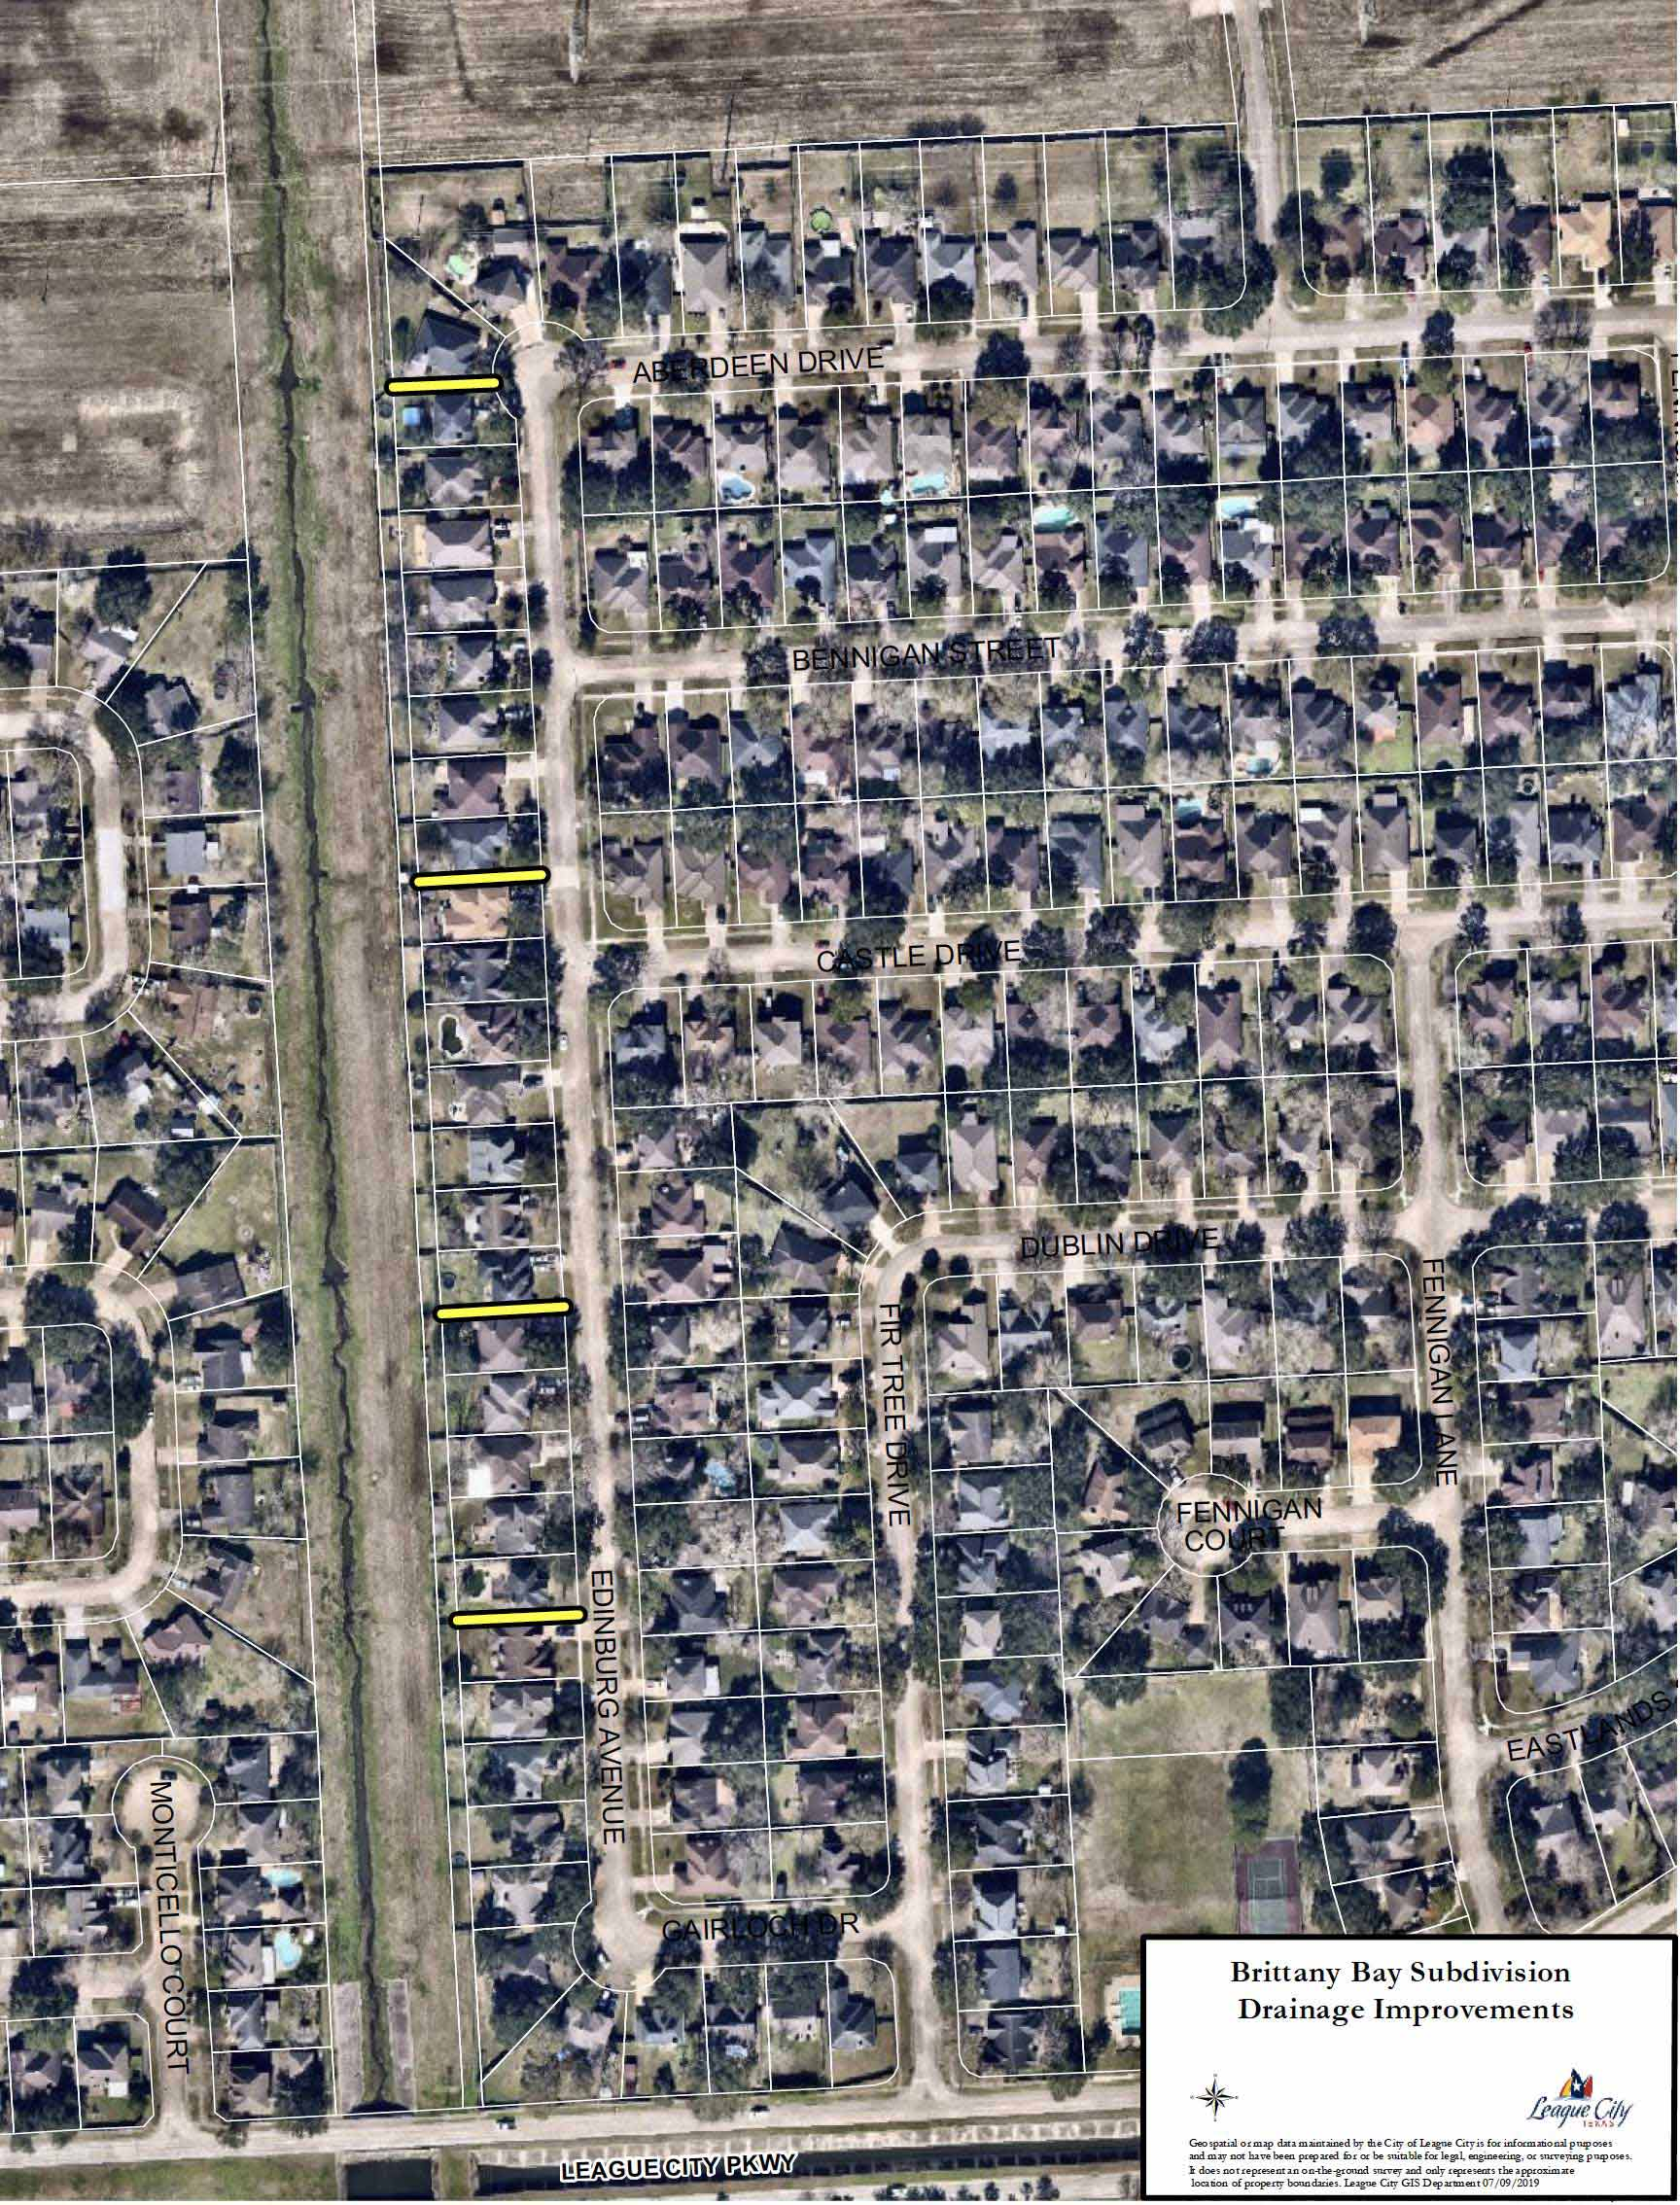 Brittany Bay Subdivision Drainage Improvements aerial map